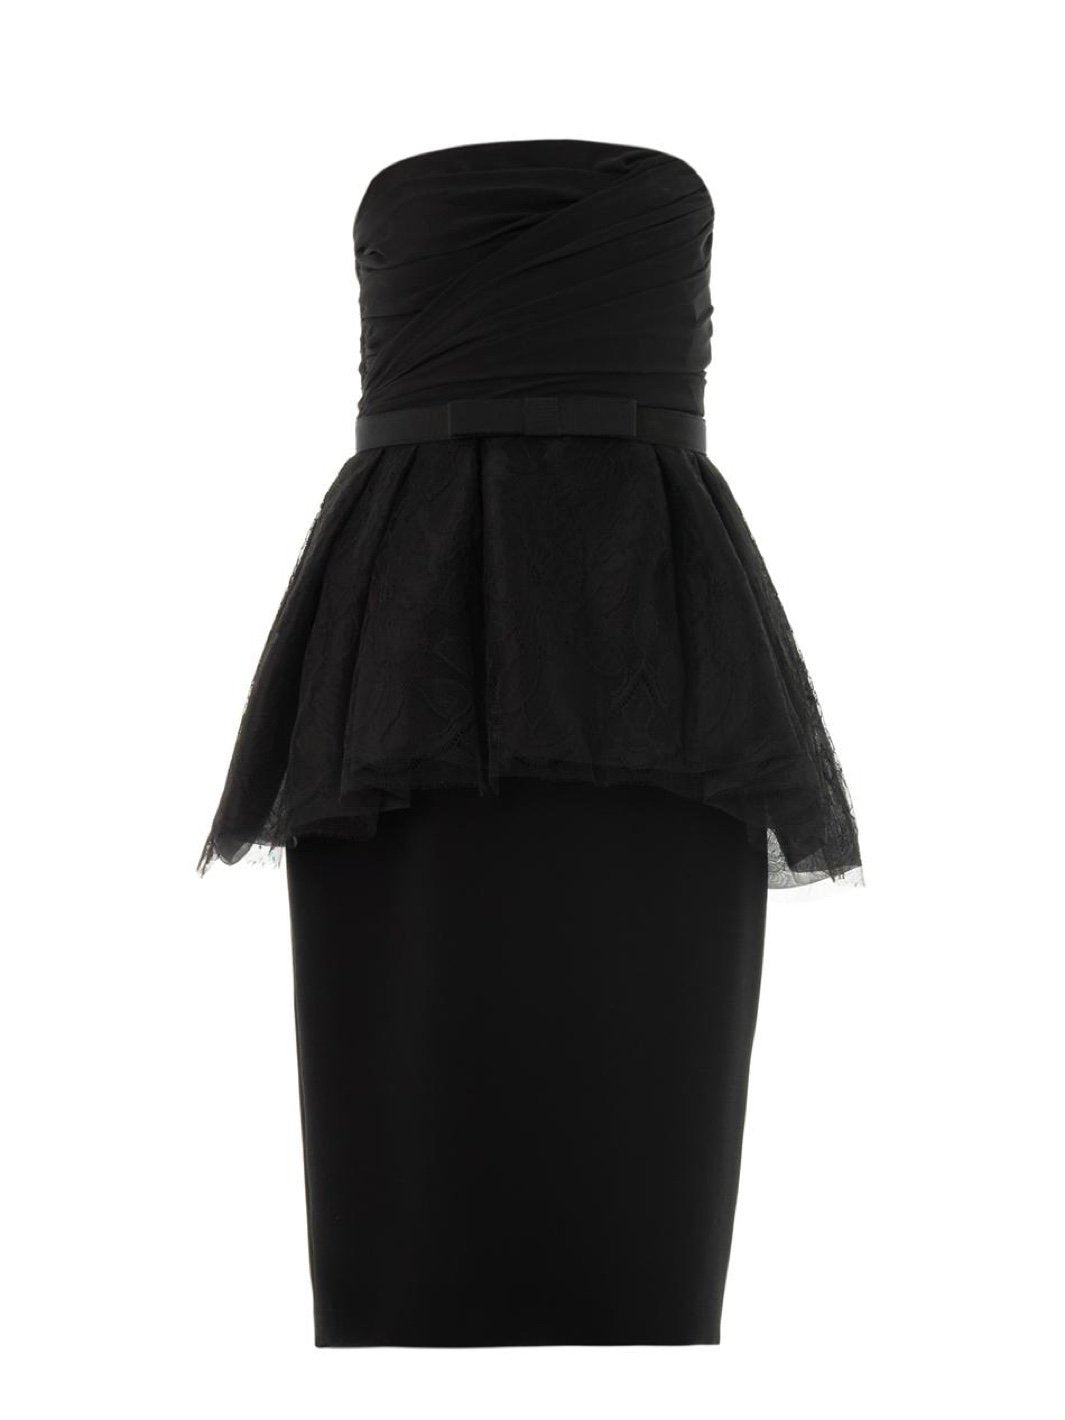 Haven Straight Strapless Cocktail Dress - The Bobby Boga